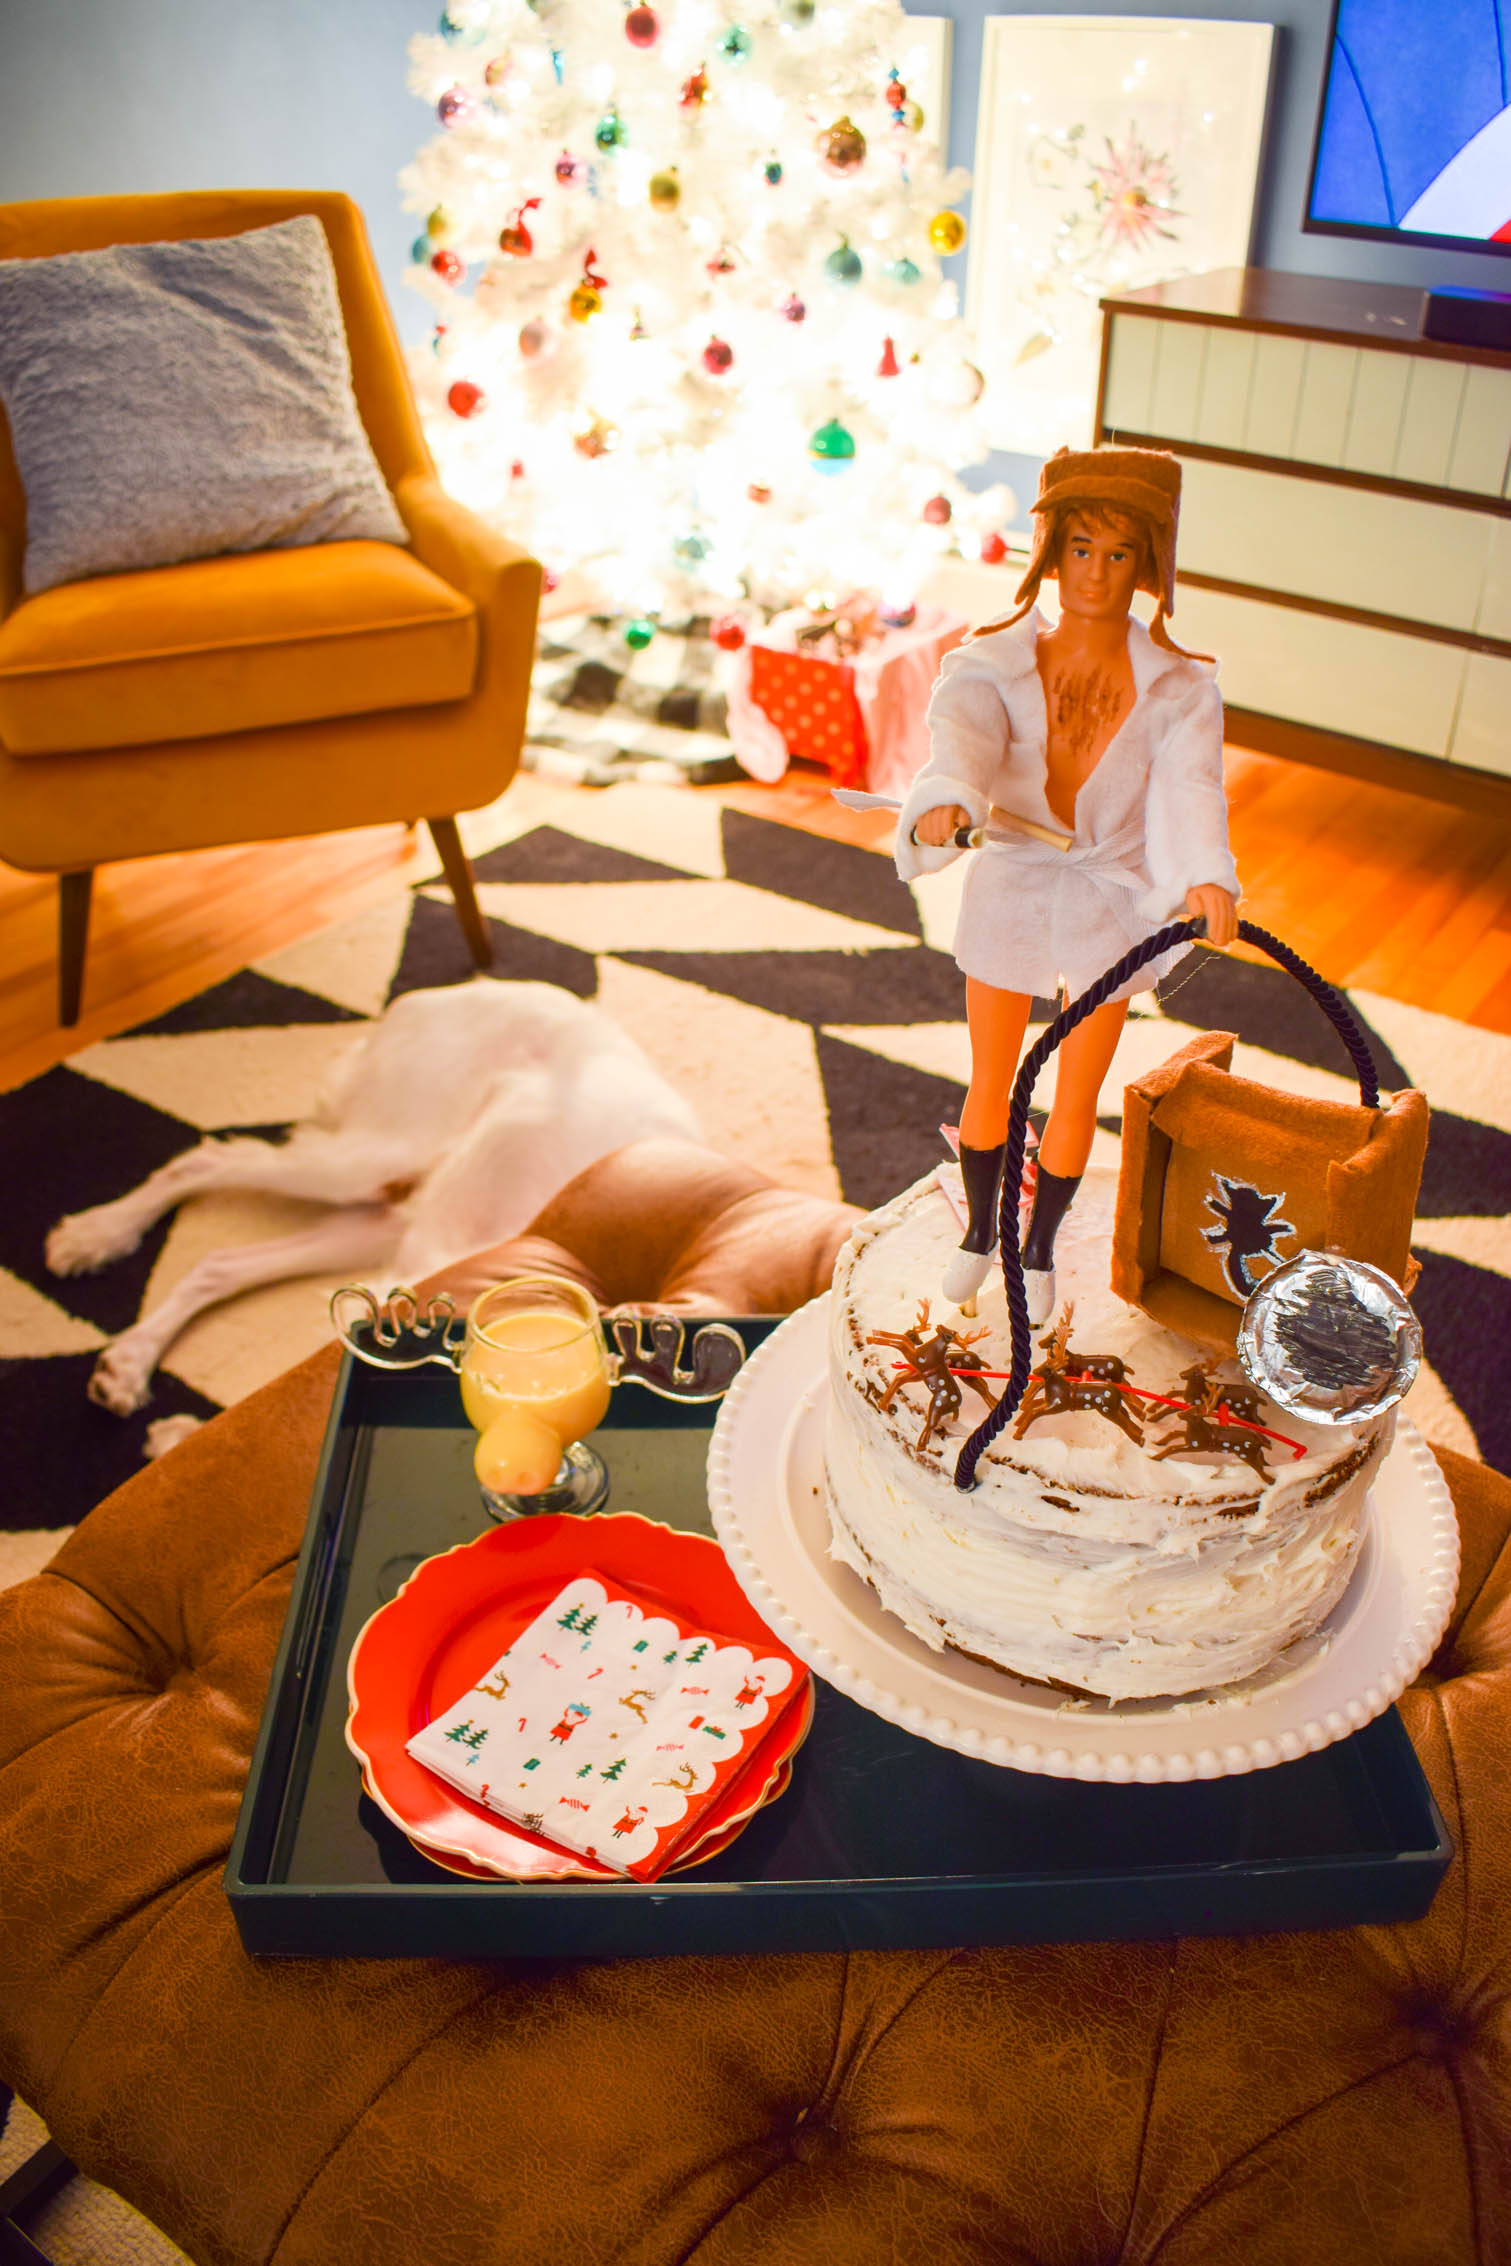 Uncle Eddy made it this year. My National Lampoon's Christmas Vacation Cake Topper is a major shot of fun, and the perfect excuse to play with dolls.